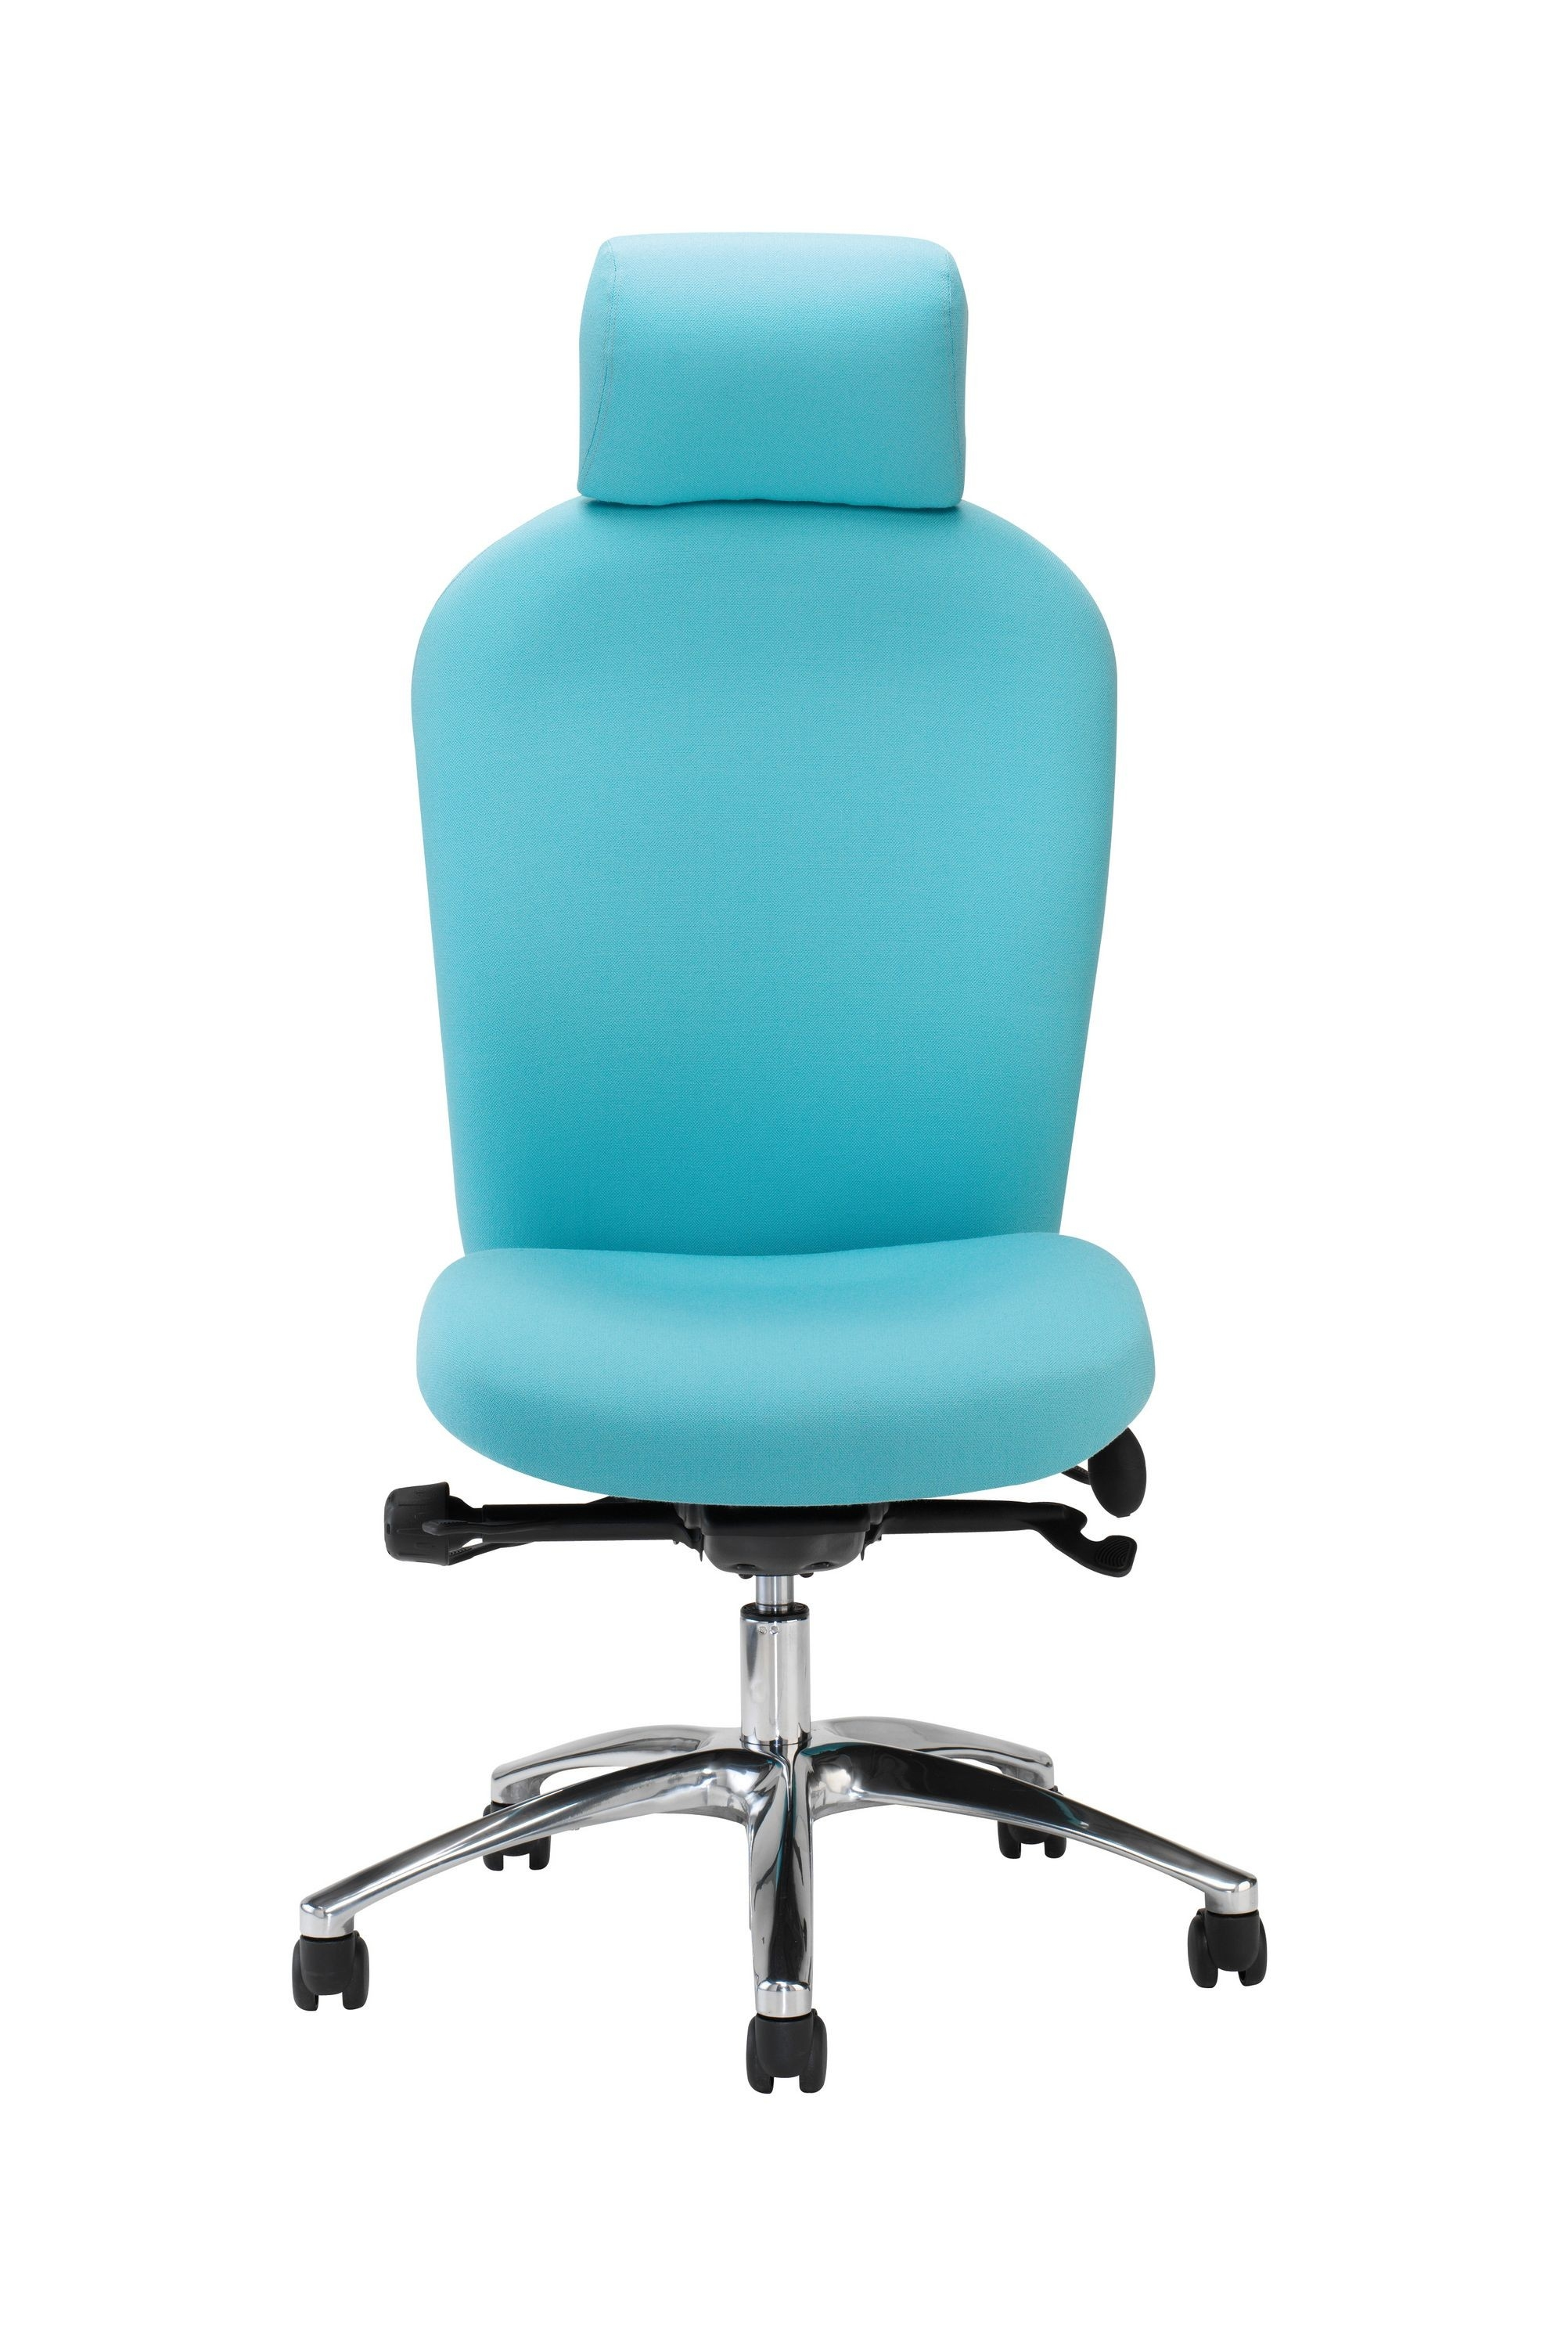 office balaban chair today aqua linon overstock desk product violet home shipping rouge garden free maison